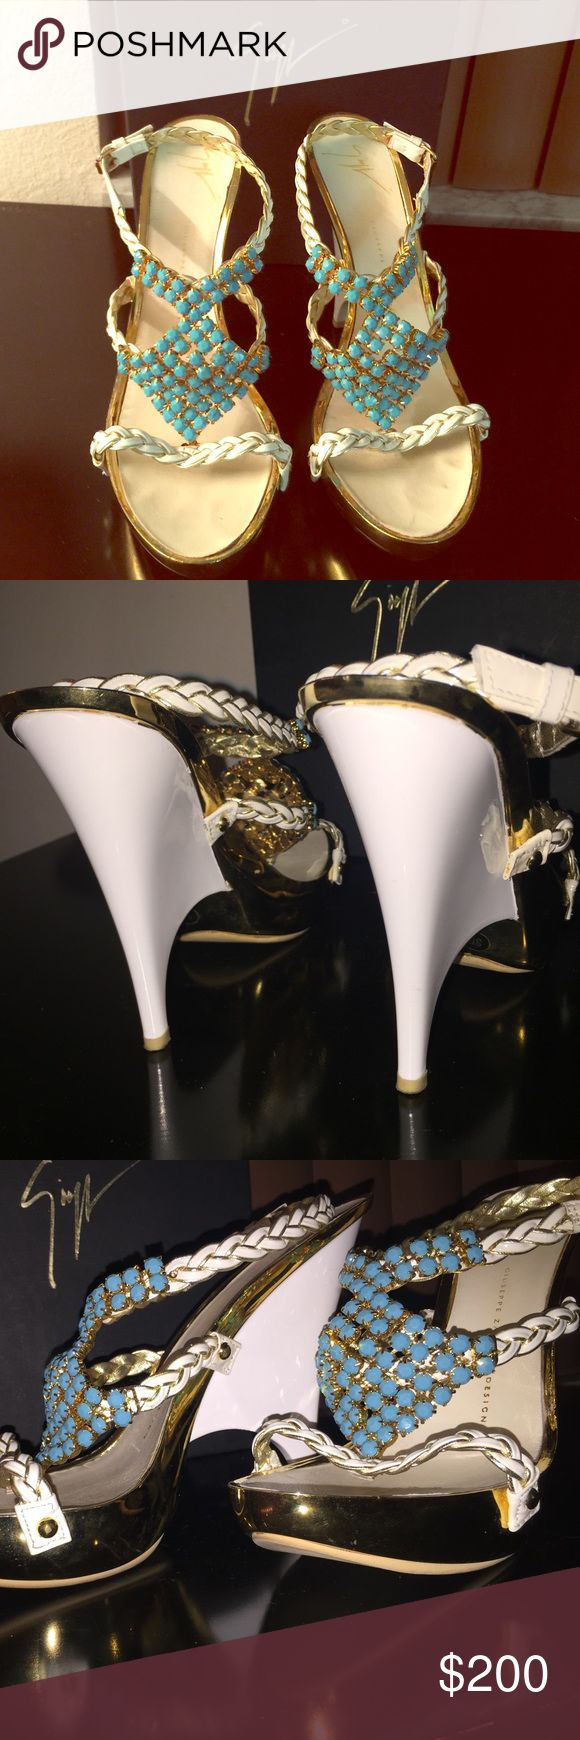 *Authentic* Giuseppe Zanotti Design Authentic Giuseppe Zanotti Design! White, Gold & Turquoise. Show Stoppers! These shoes have been used, however they are in great condition! See pictures. If you have an inquiry or would like more pictures please let me know. Comes with Shoe bag and shoe box Giuseppe Zanotti Shoes Heels